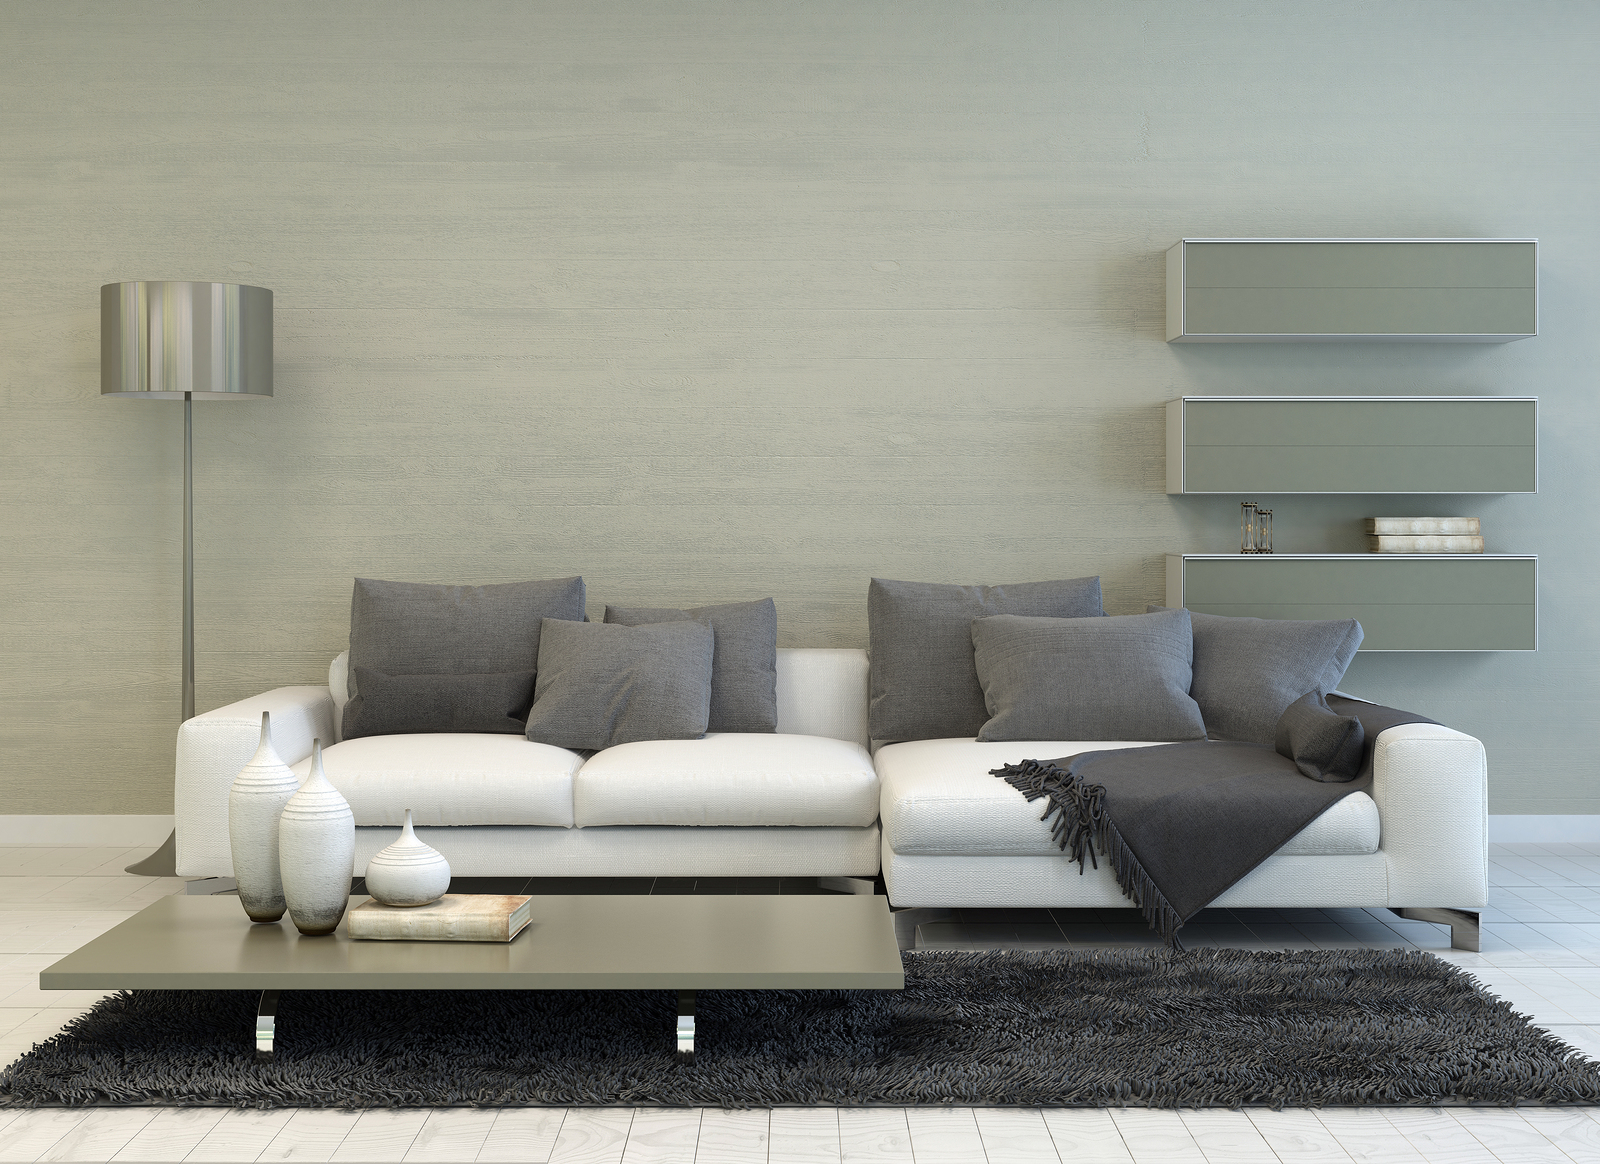 The Silver Touch Rendering Of Modern Grey And White Living Room With Floor Lam